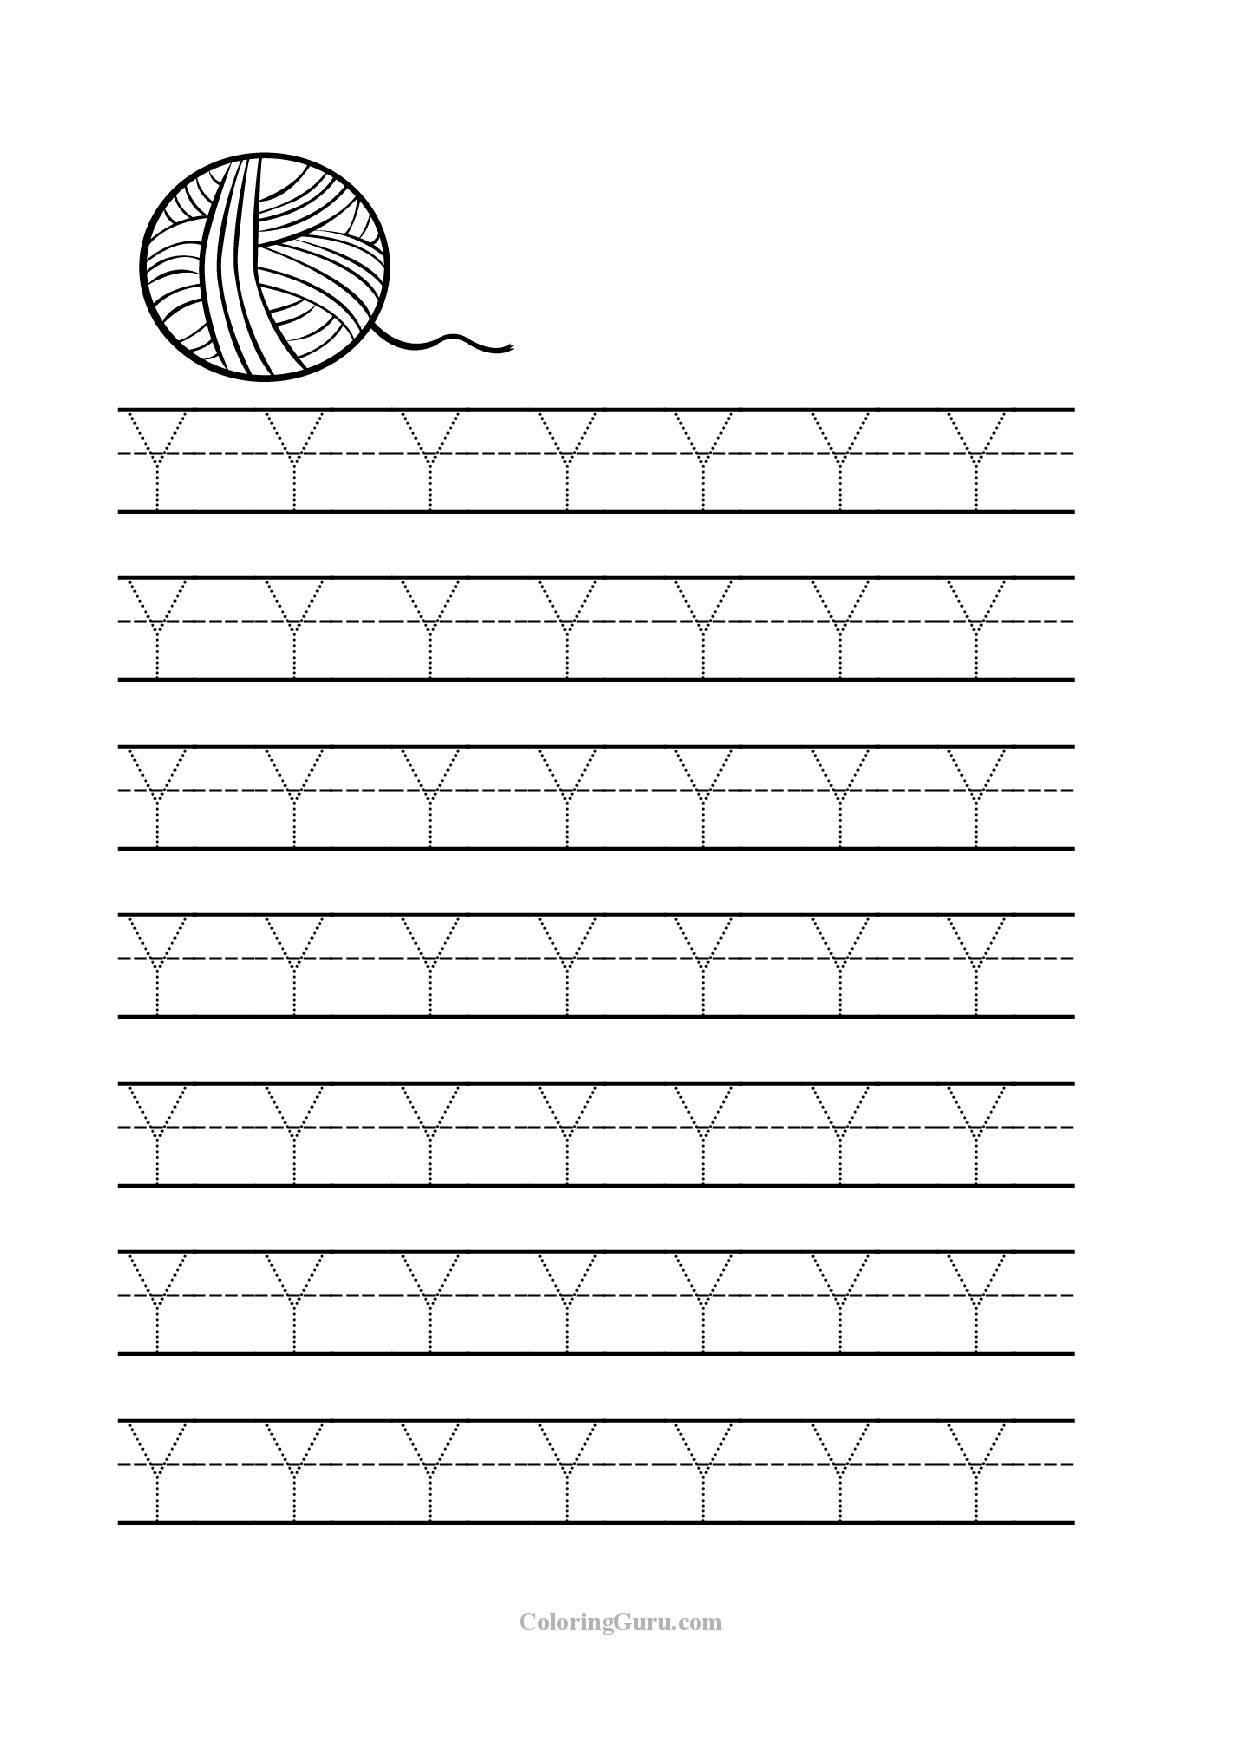 Free Printable Tracing Letter Y Worksheets For Preschool Prescolaire [ 1754 x 1240 Pixel ]